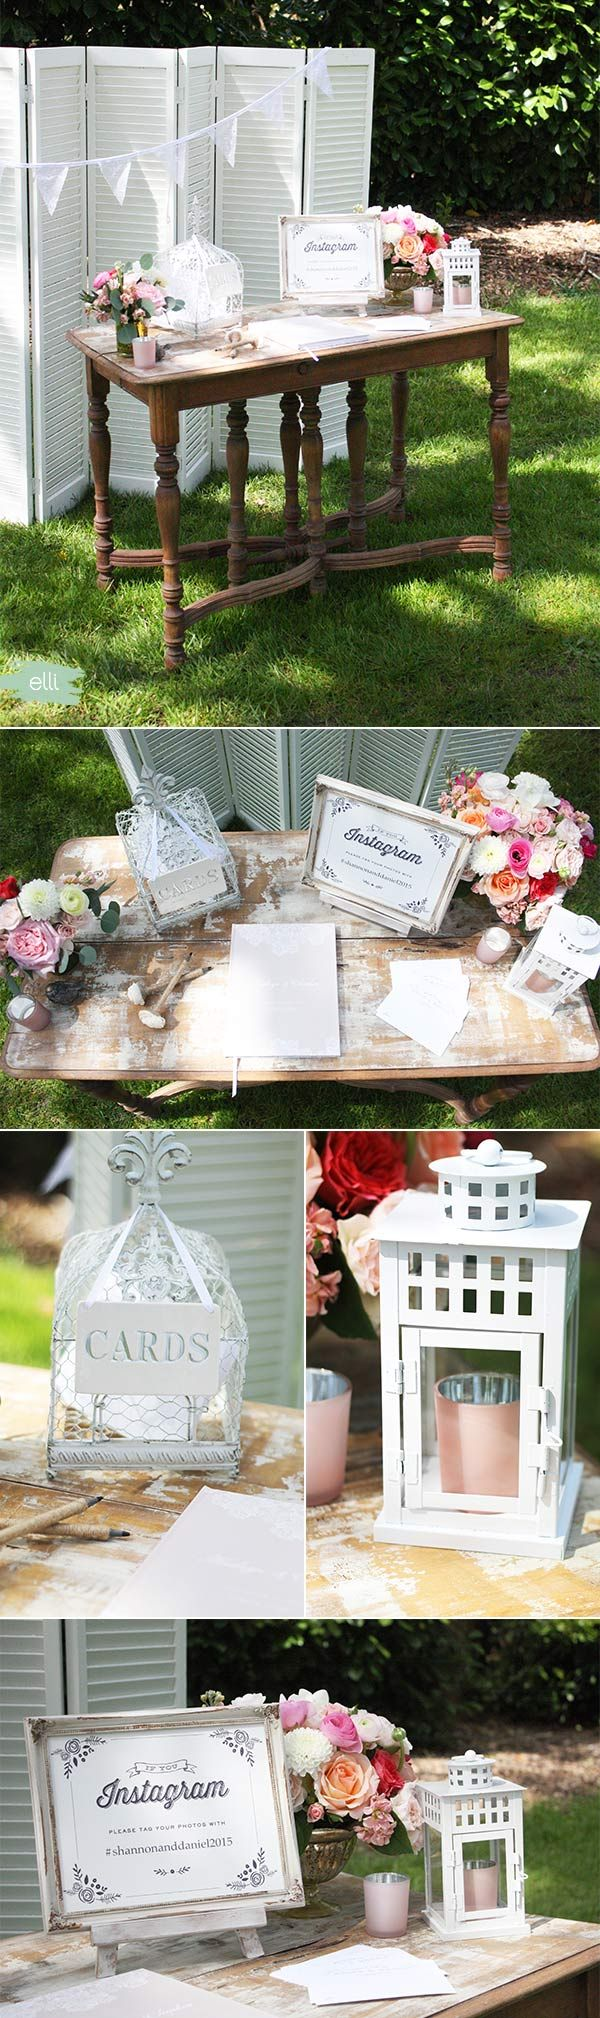 Elegant Lace Wedding Welcome Table